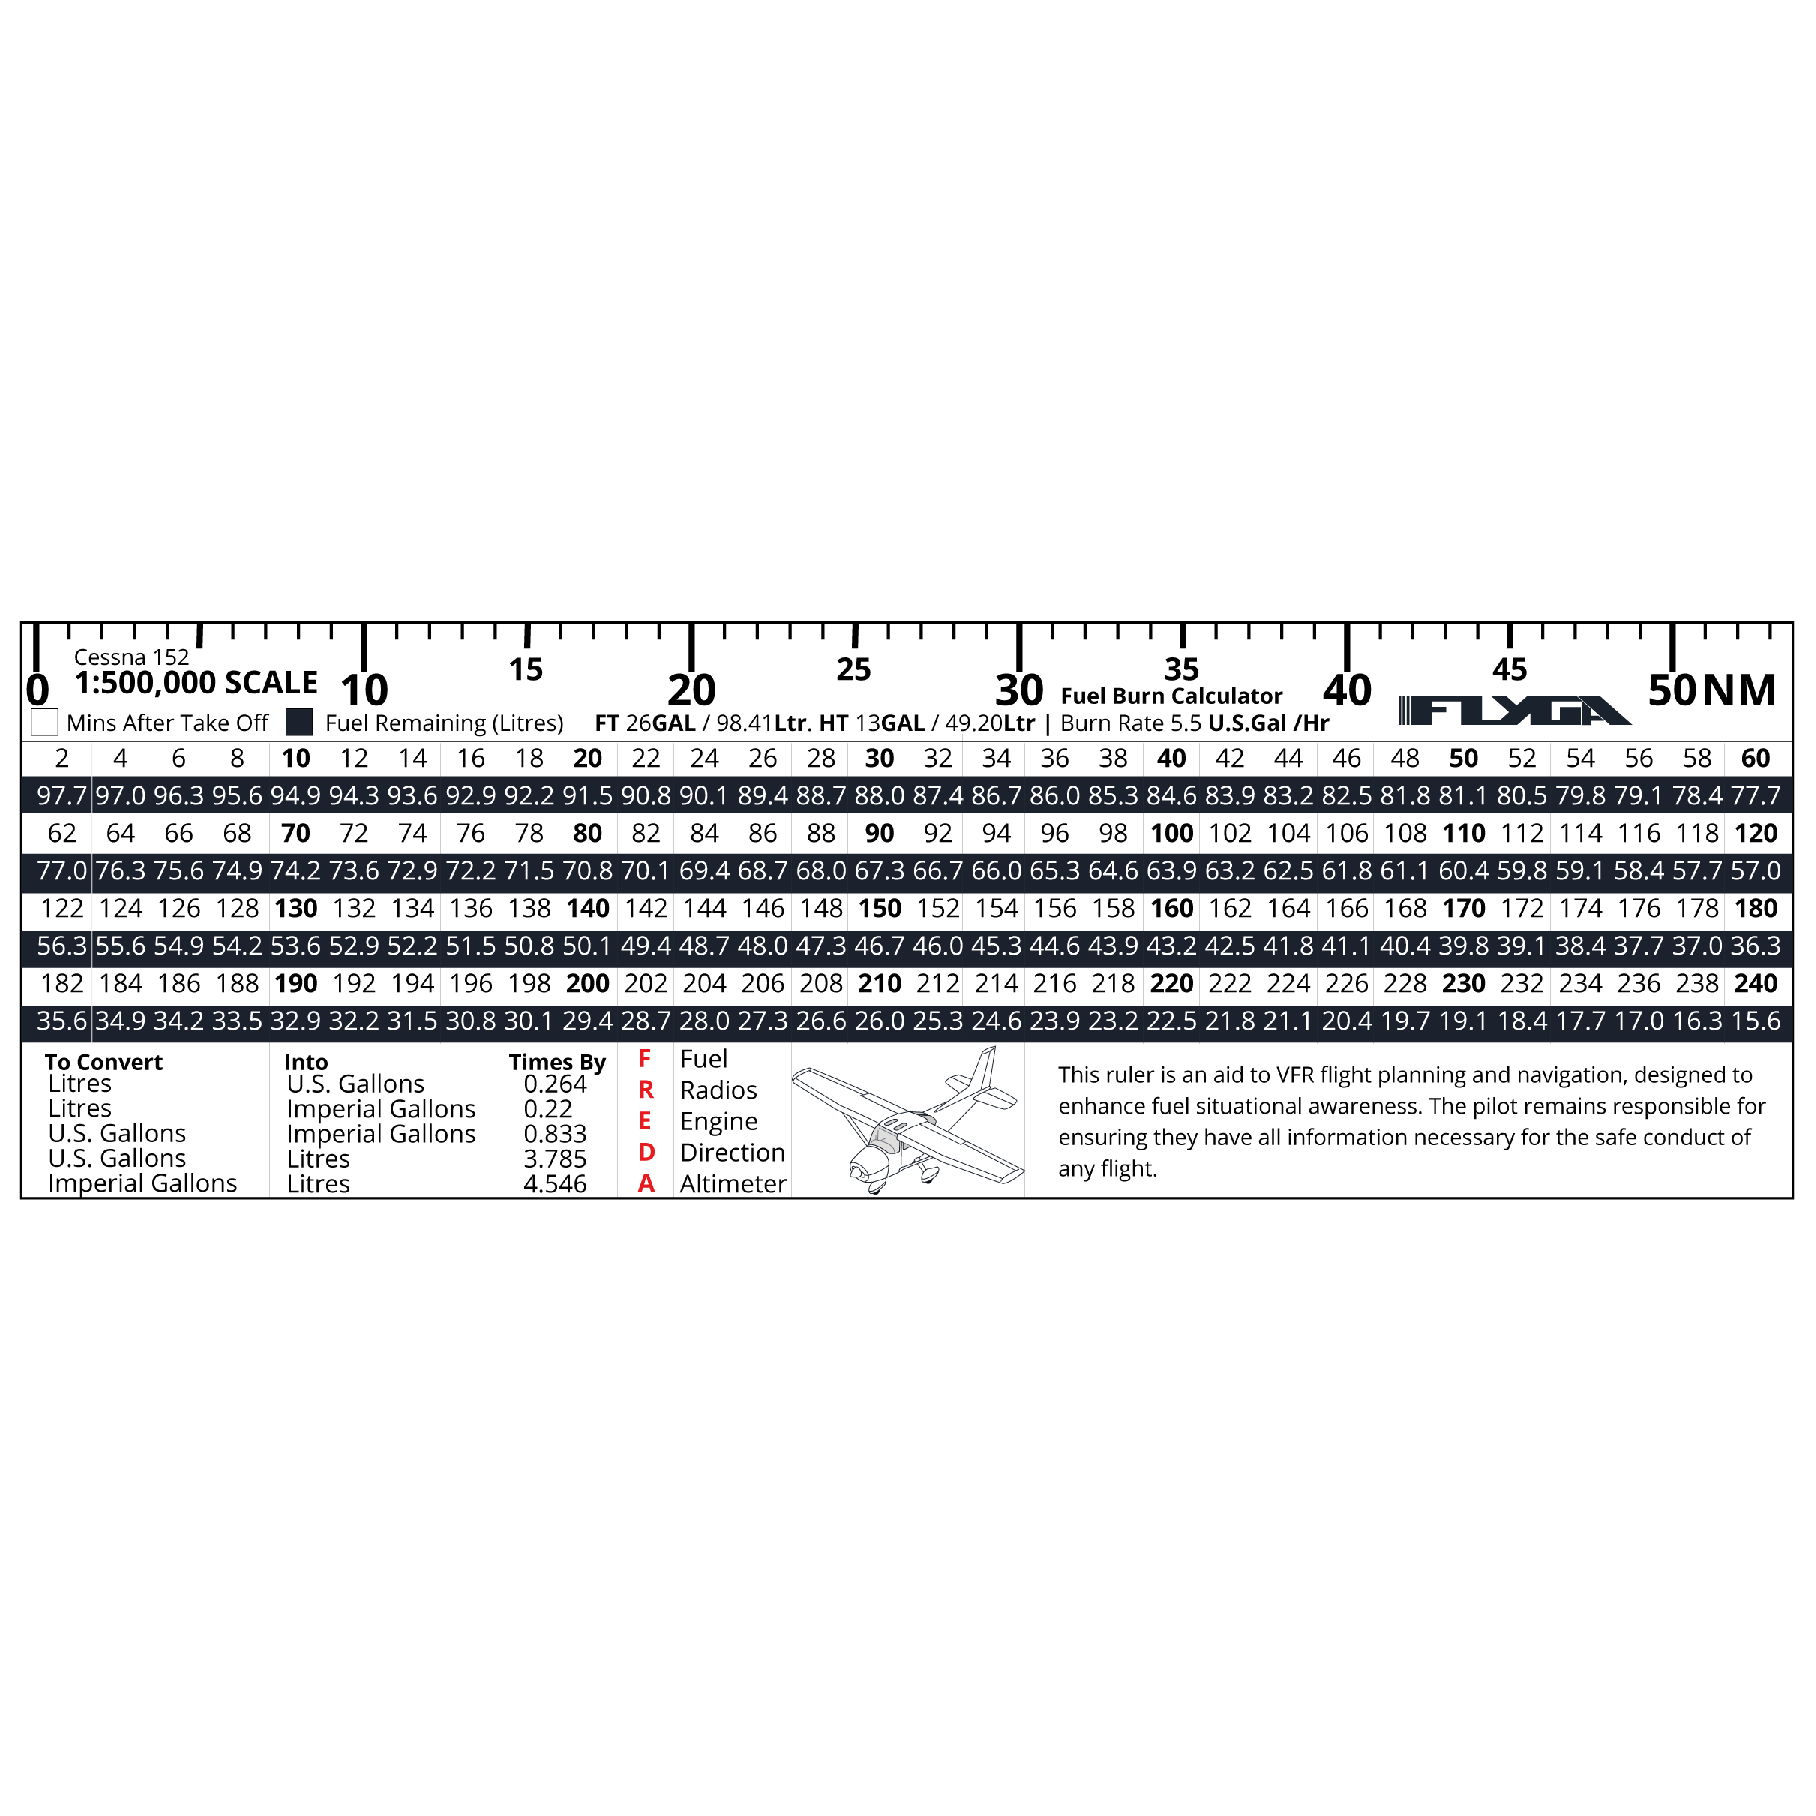 cessna 152 fuel burn calculator scale ruler fly ga